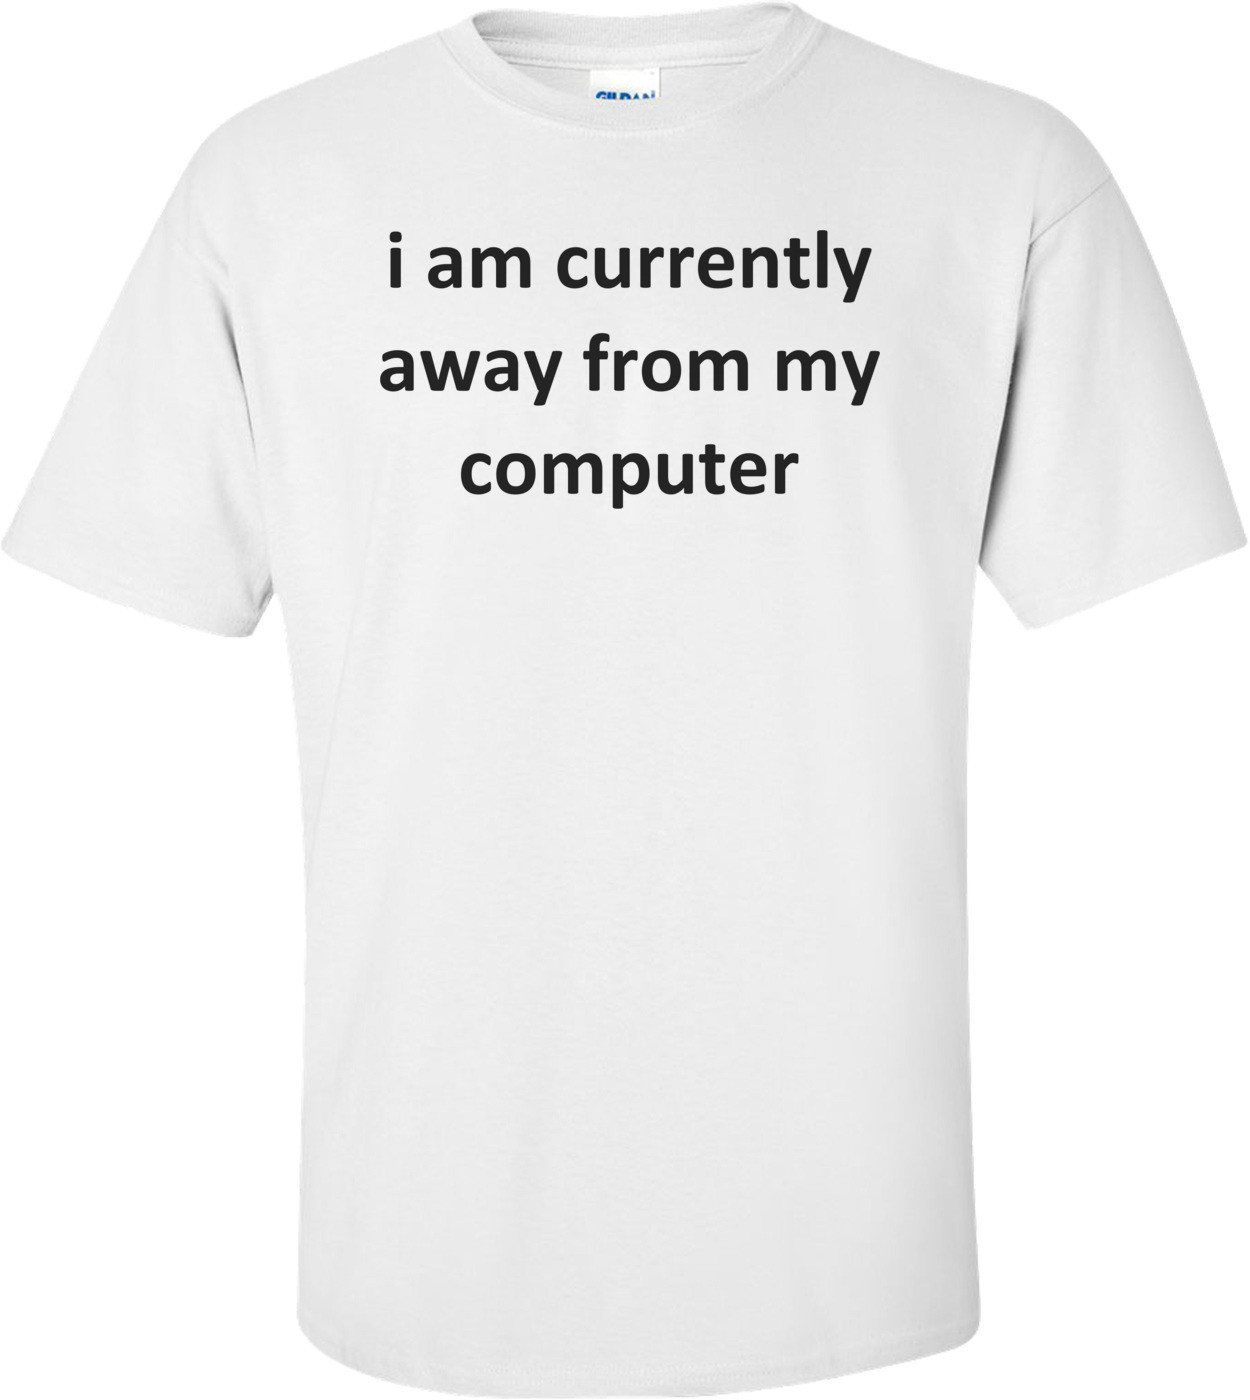 i am currently away from my computer Shirt